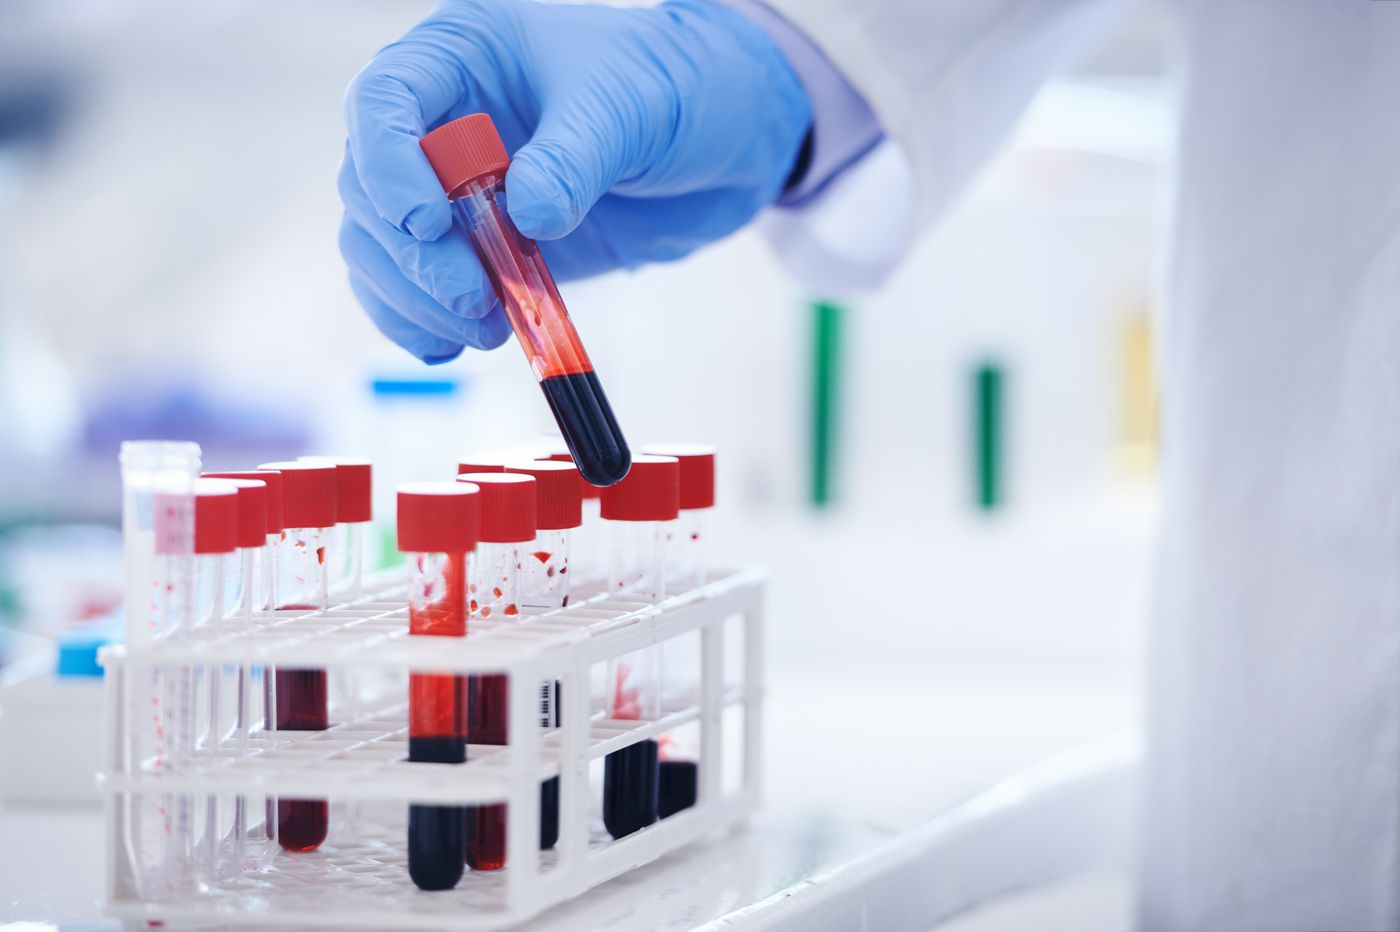 Could a simple blood sample be used to detect tiny cancers before they grow? Billions are being invested to find out.